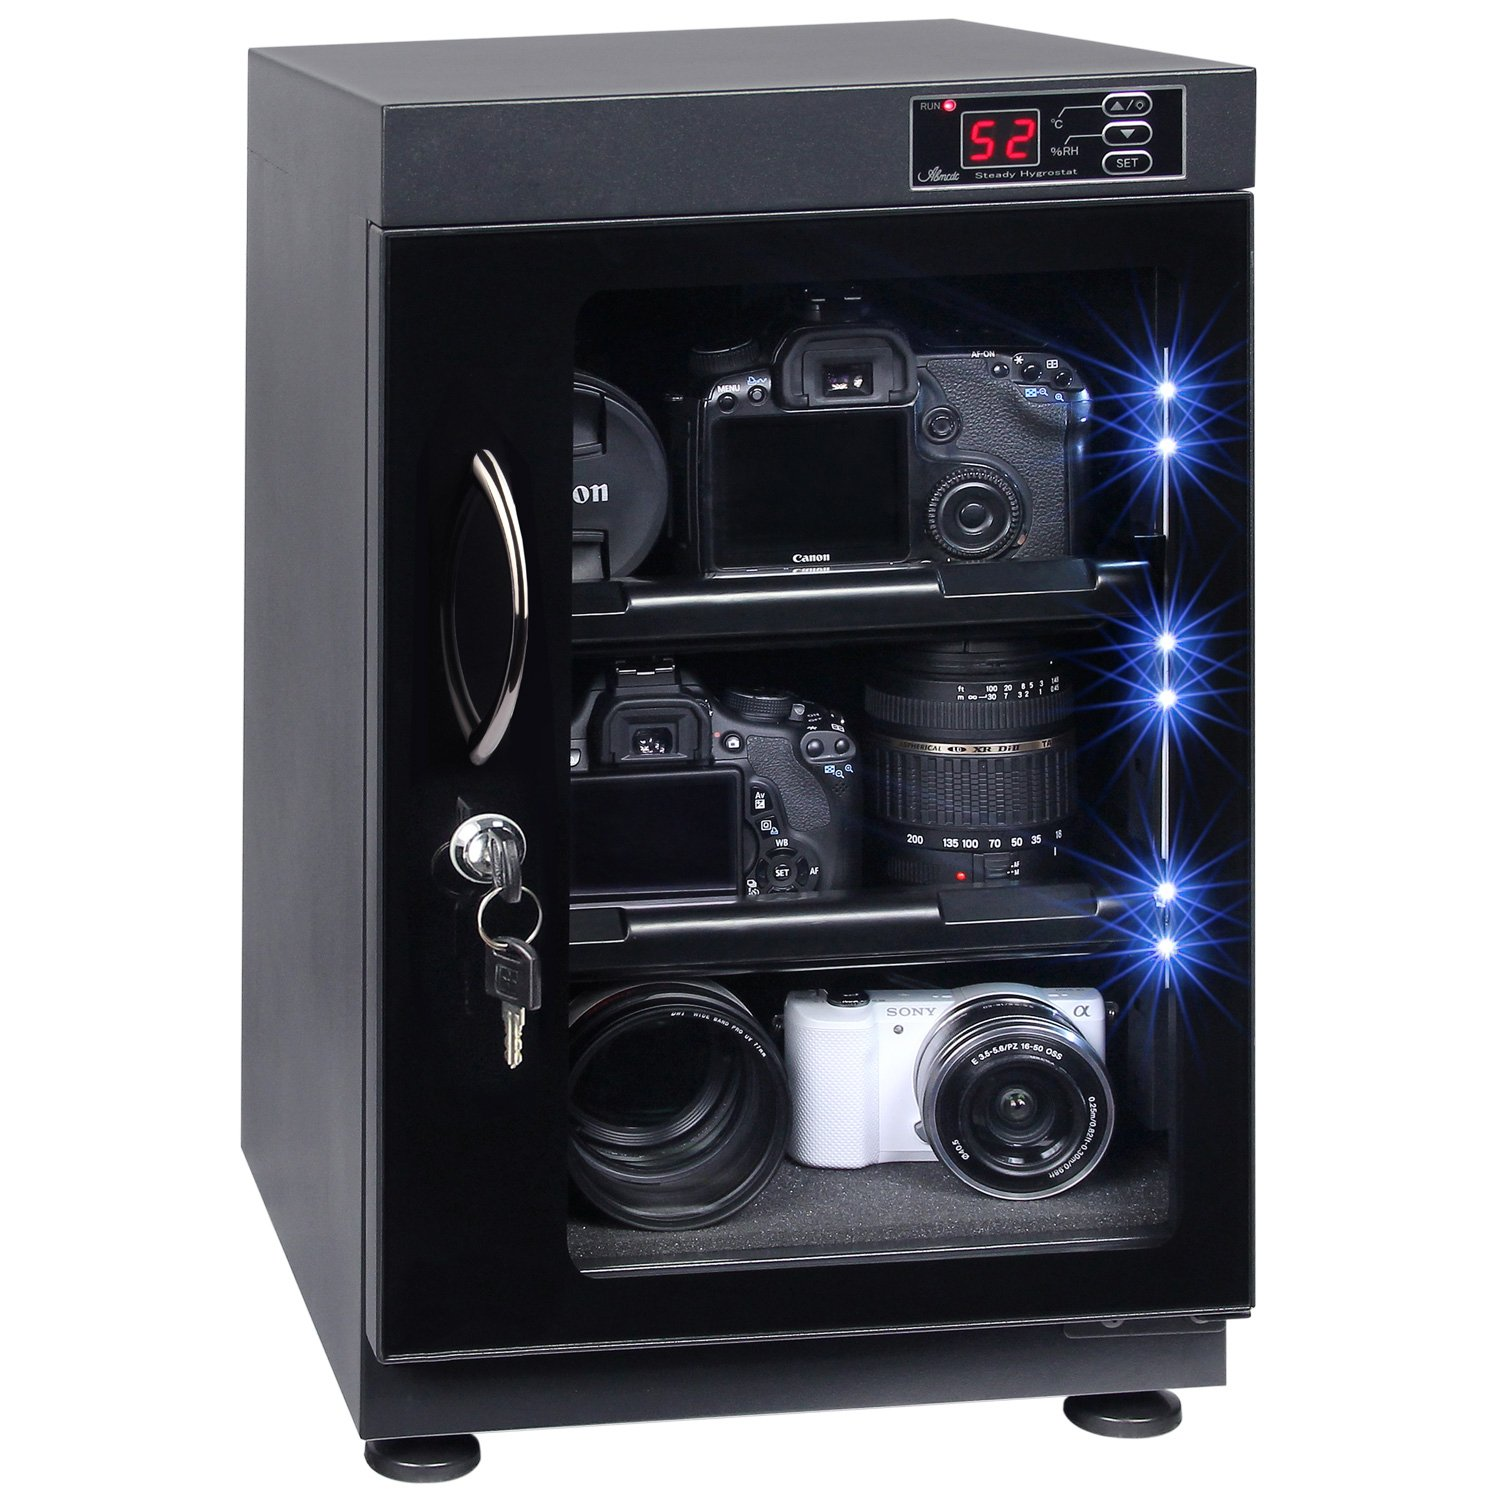 T.A.P 38L Automatic Numerical LED Control Dry Cabinet Box Storage for DSLR Camera Lens by T.A.P